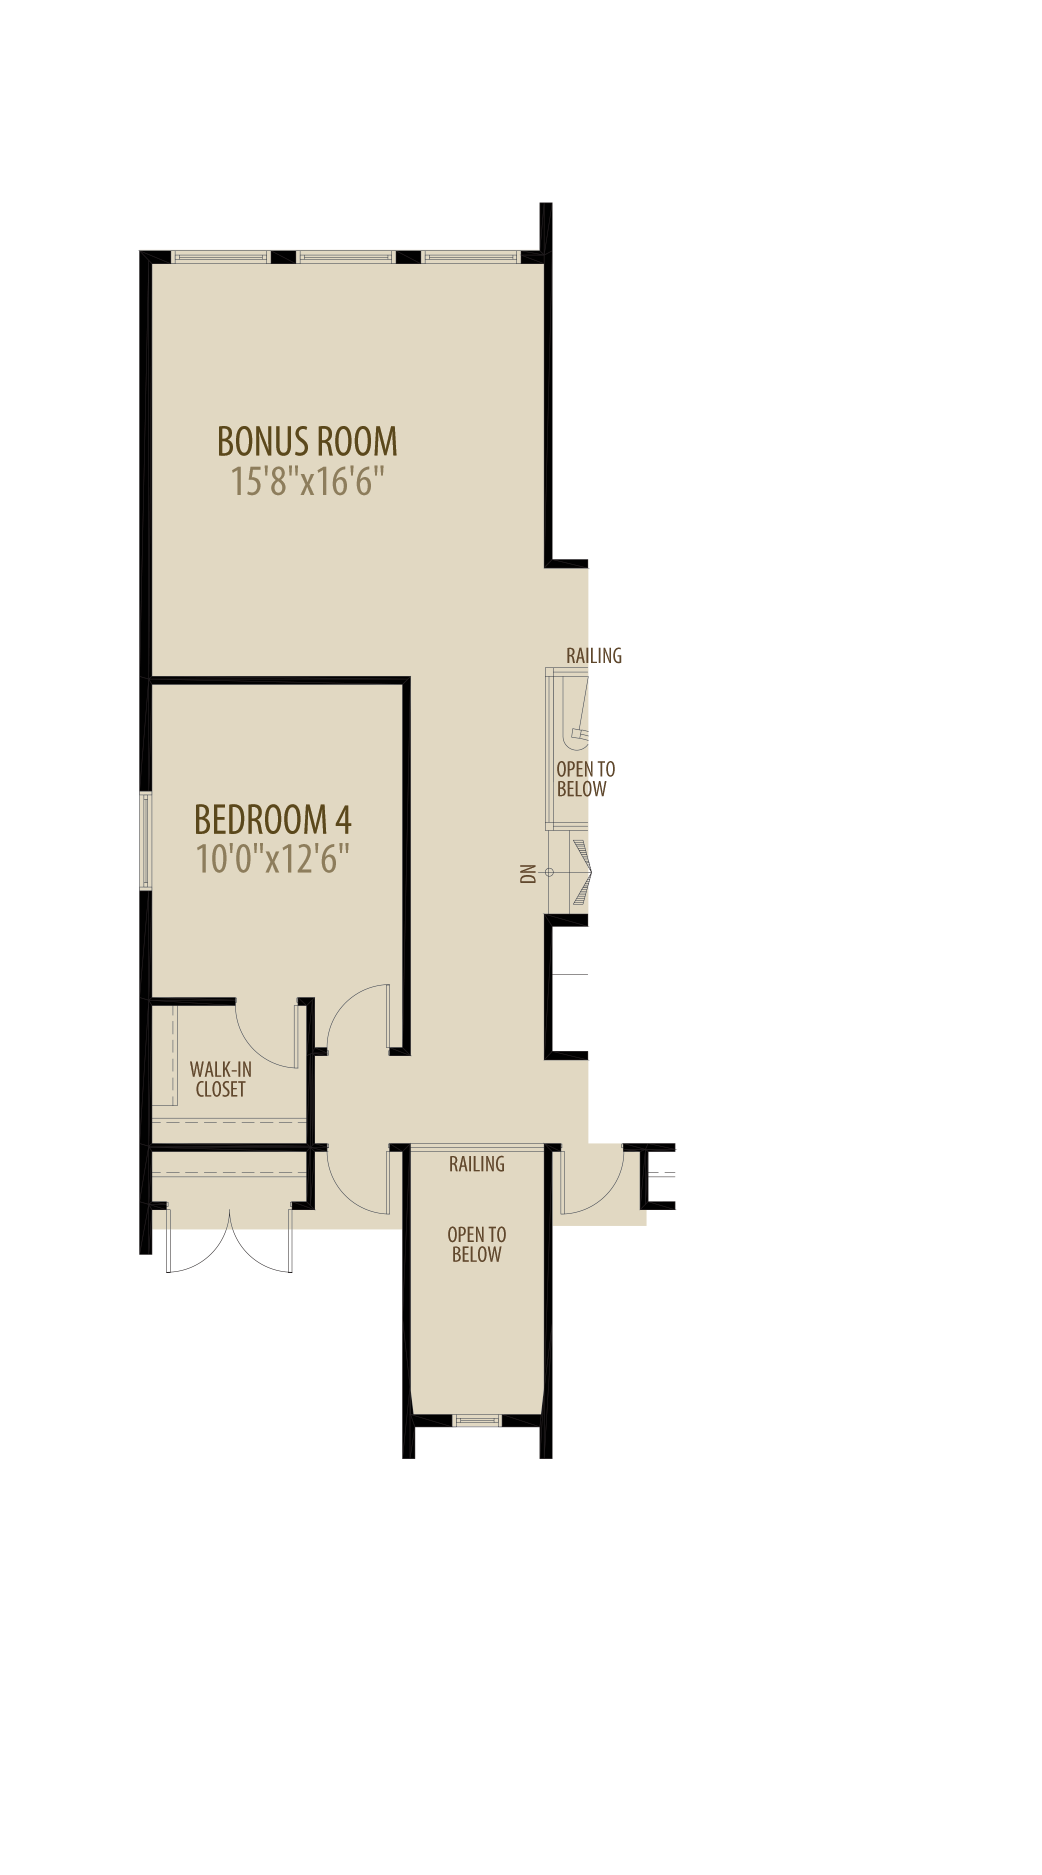 Option 4 4th Bedroom adds 218sq ft